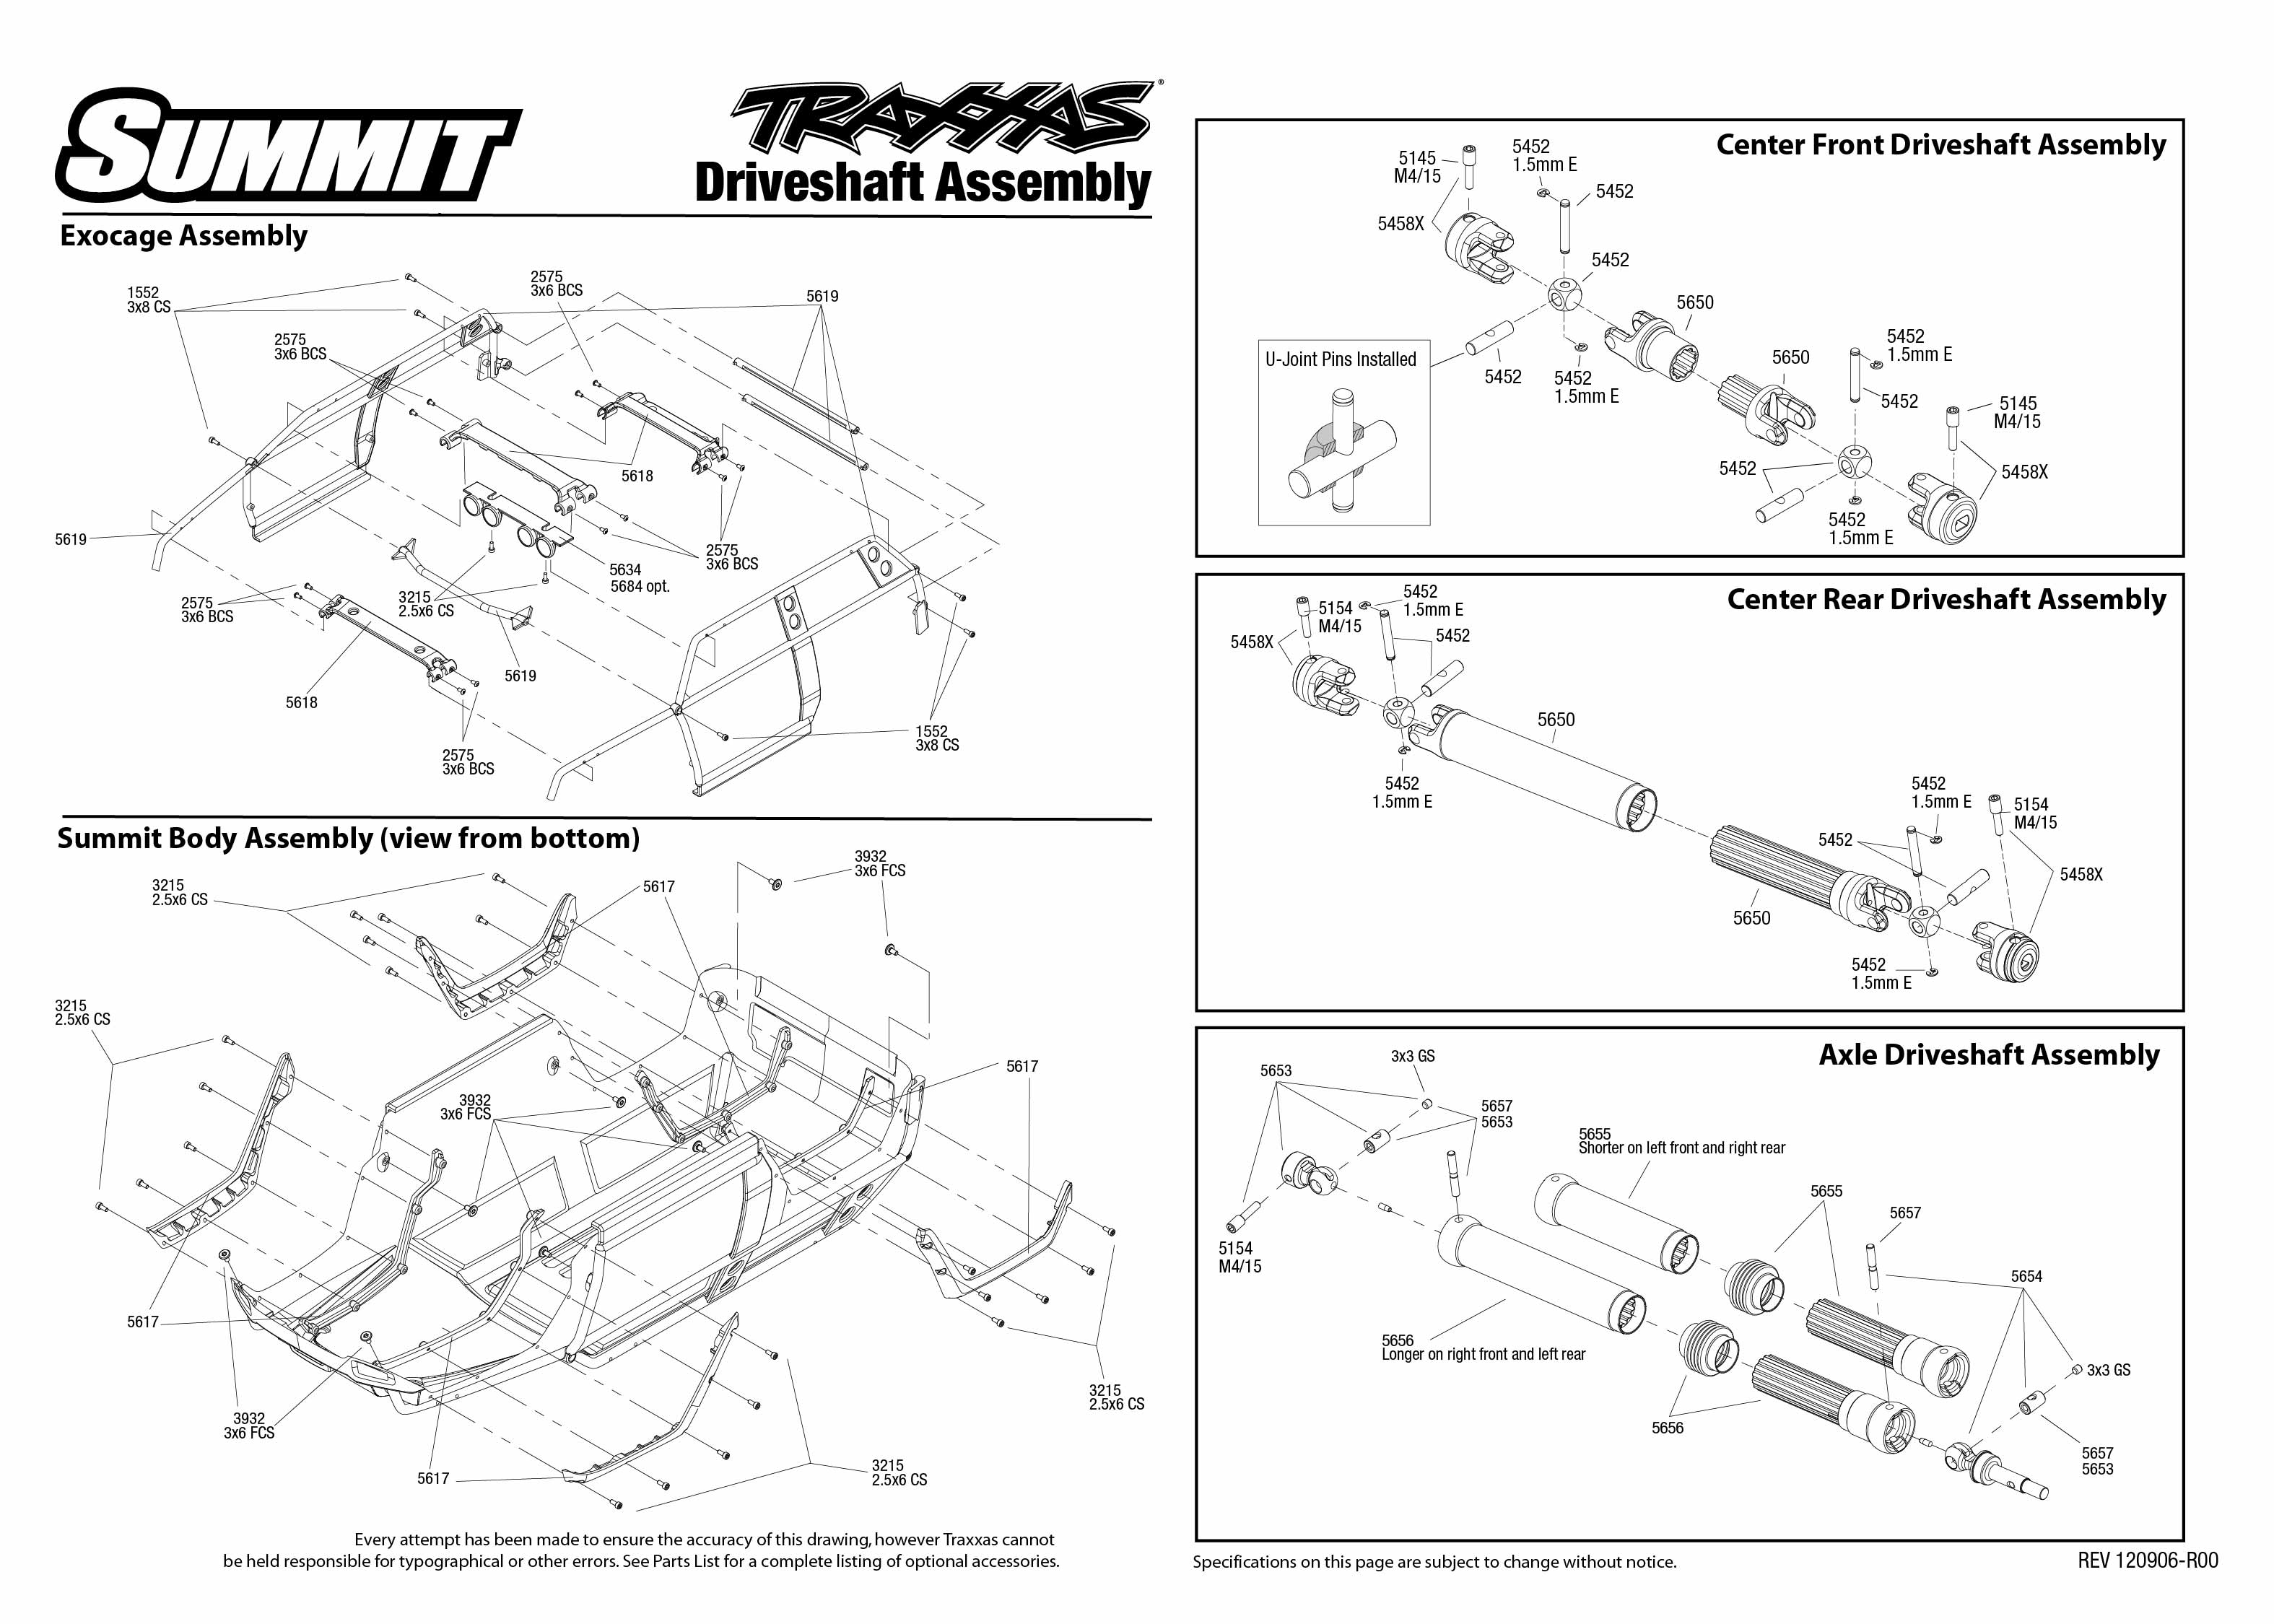 5607 120907 Driveshafts traxxas 1 10 scale summit 4wd extreme terrain monster truck 5607l summit wiring harness instructions at gsmx.co